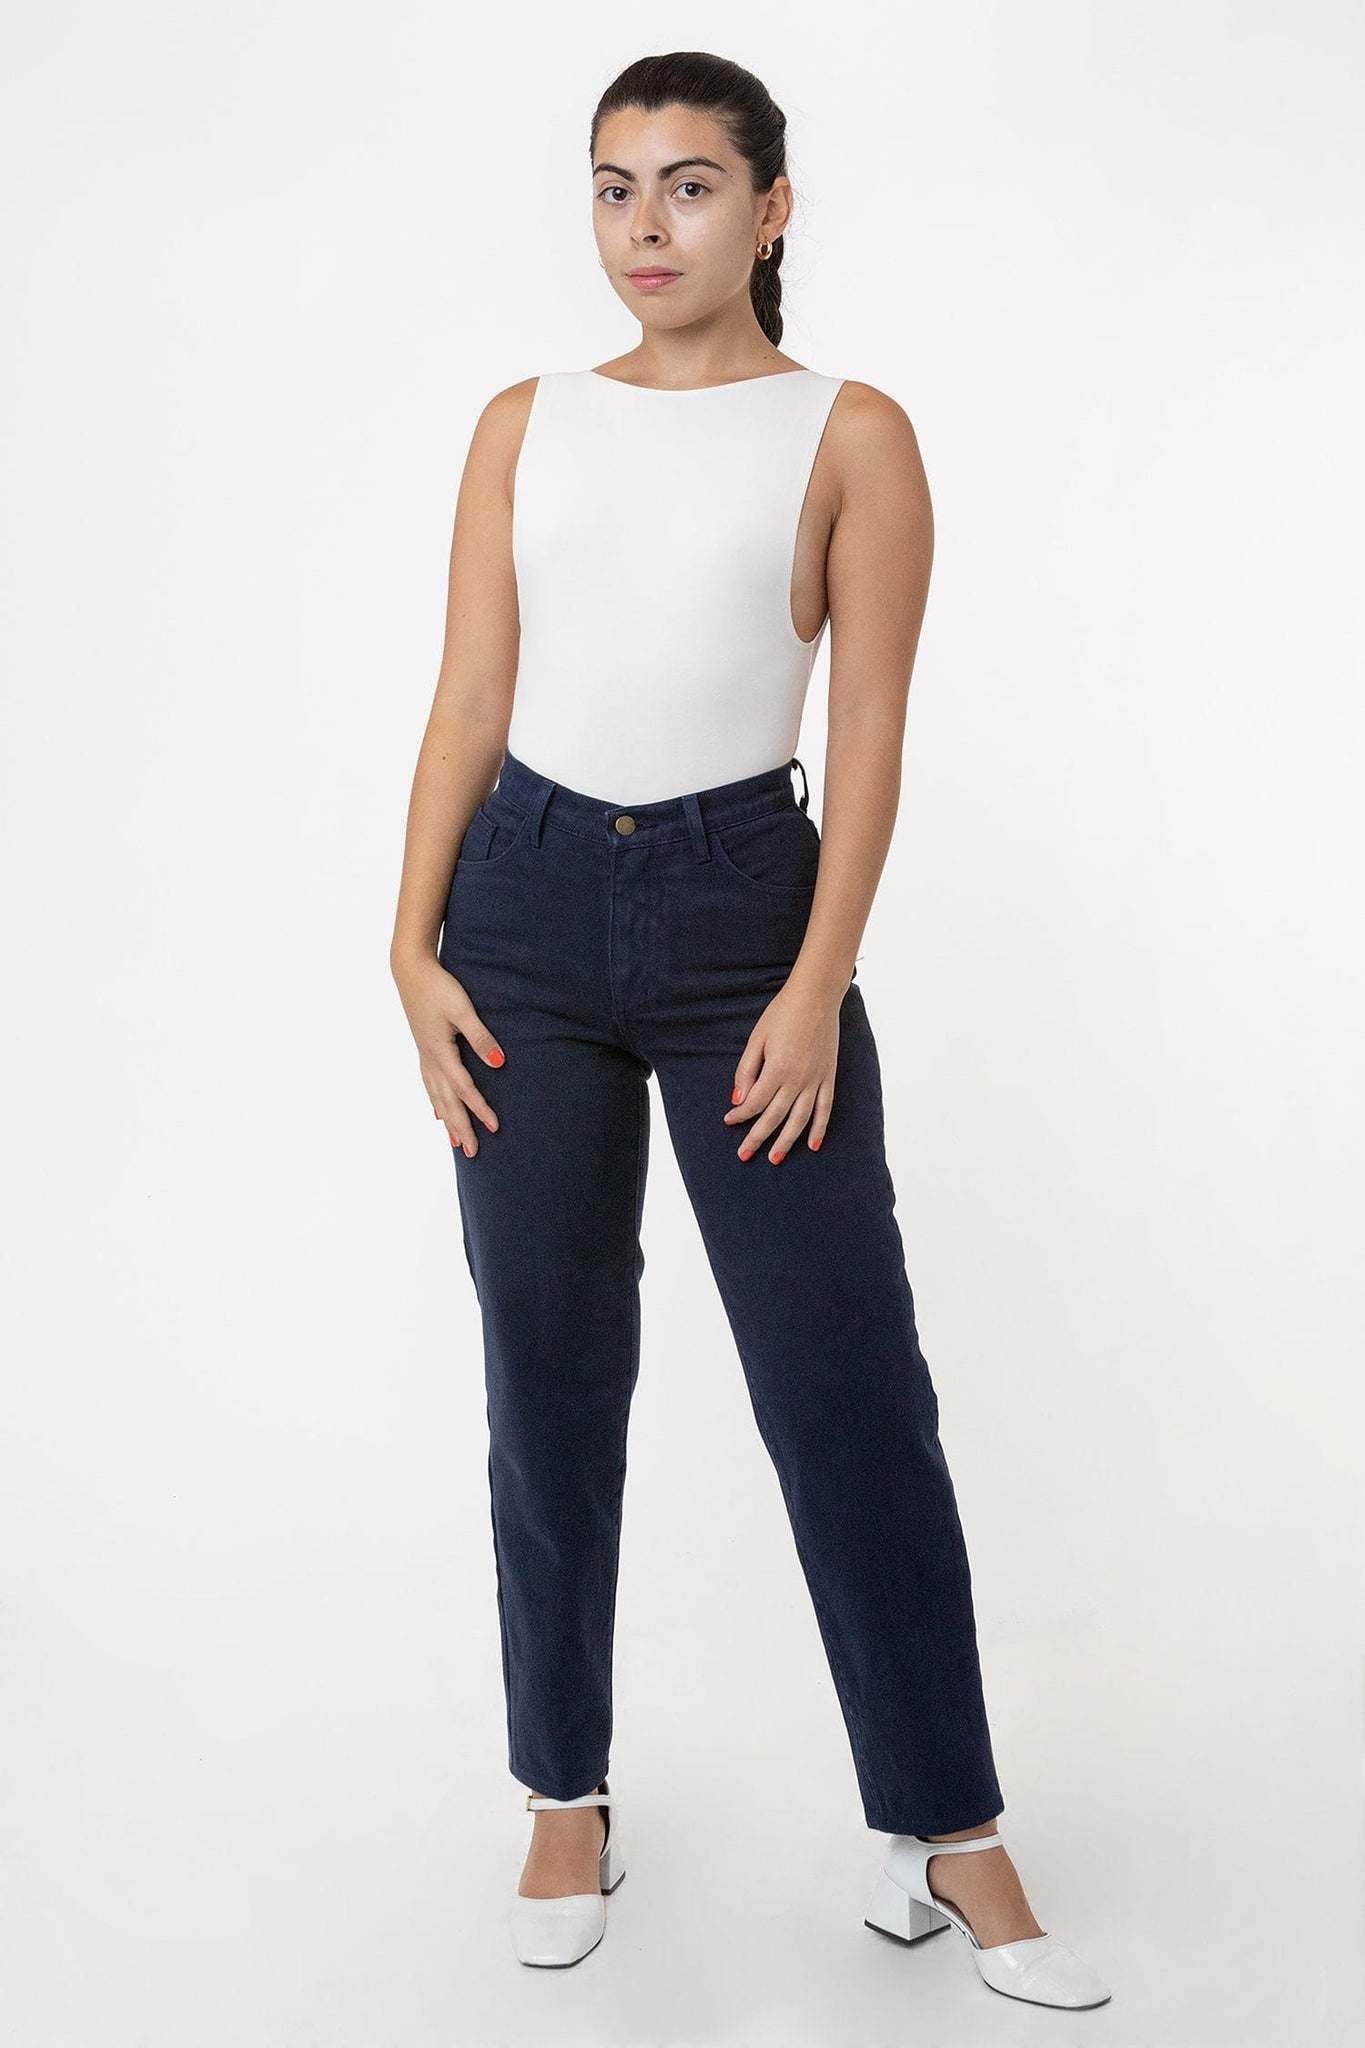 RBDW01GD - Garment Dye Women's Relaxed Fit Bull Denim Jean (Summer 2020)